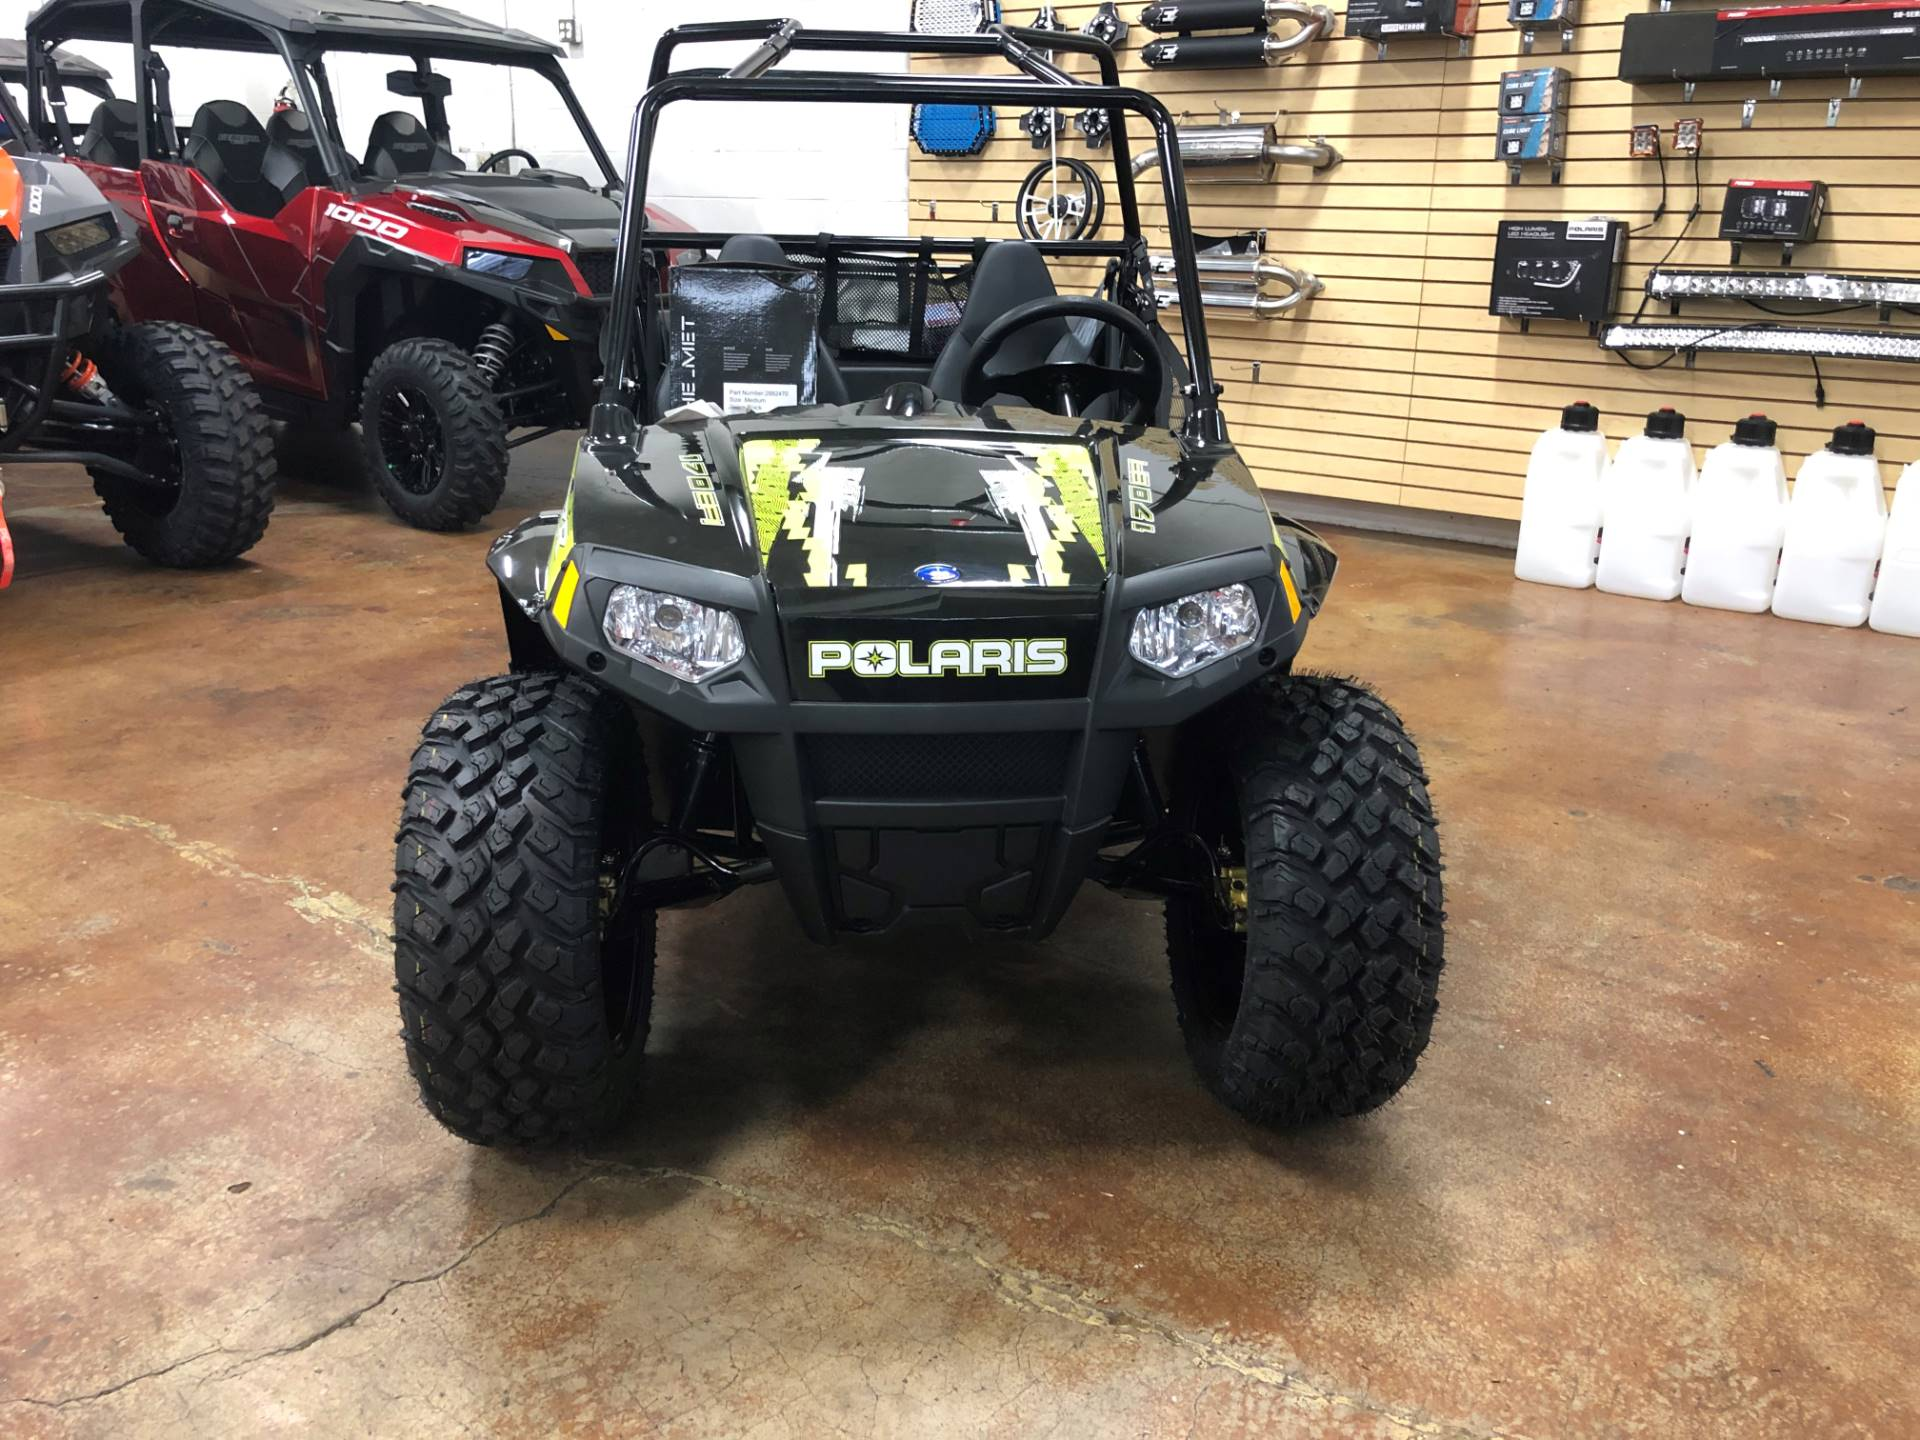 2019 Polaris RZR 170 EFI in Tualatin, Oregon - Photo 3